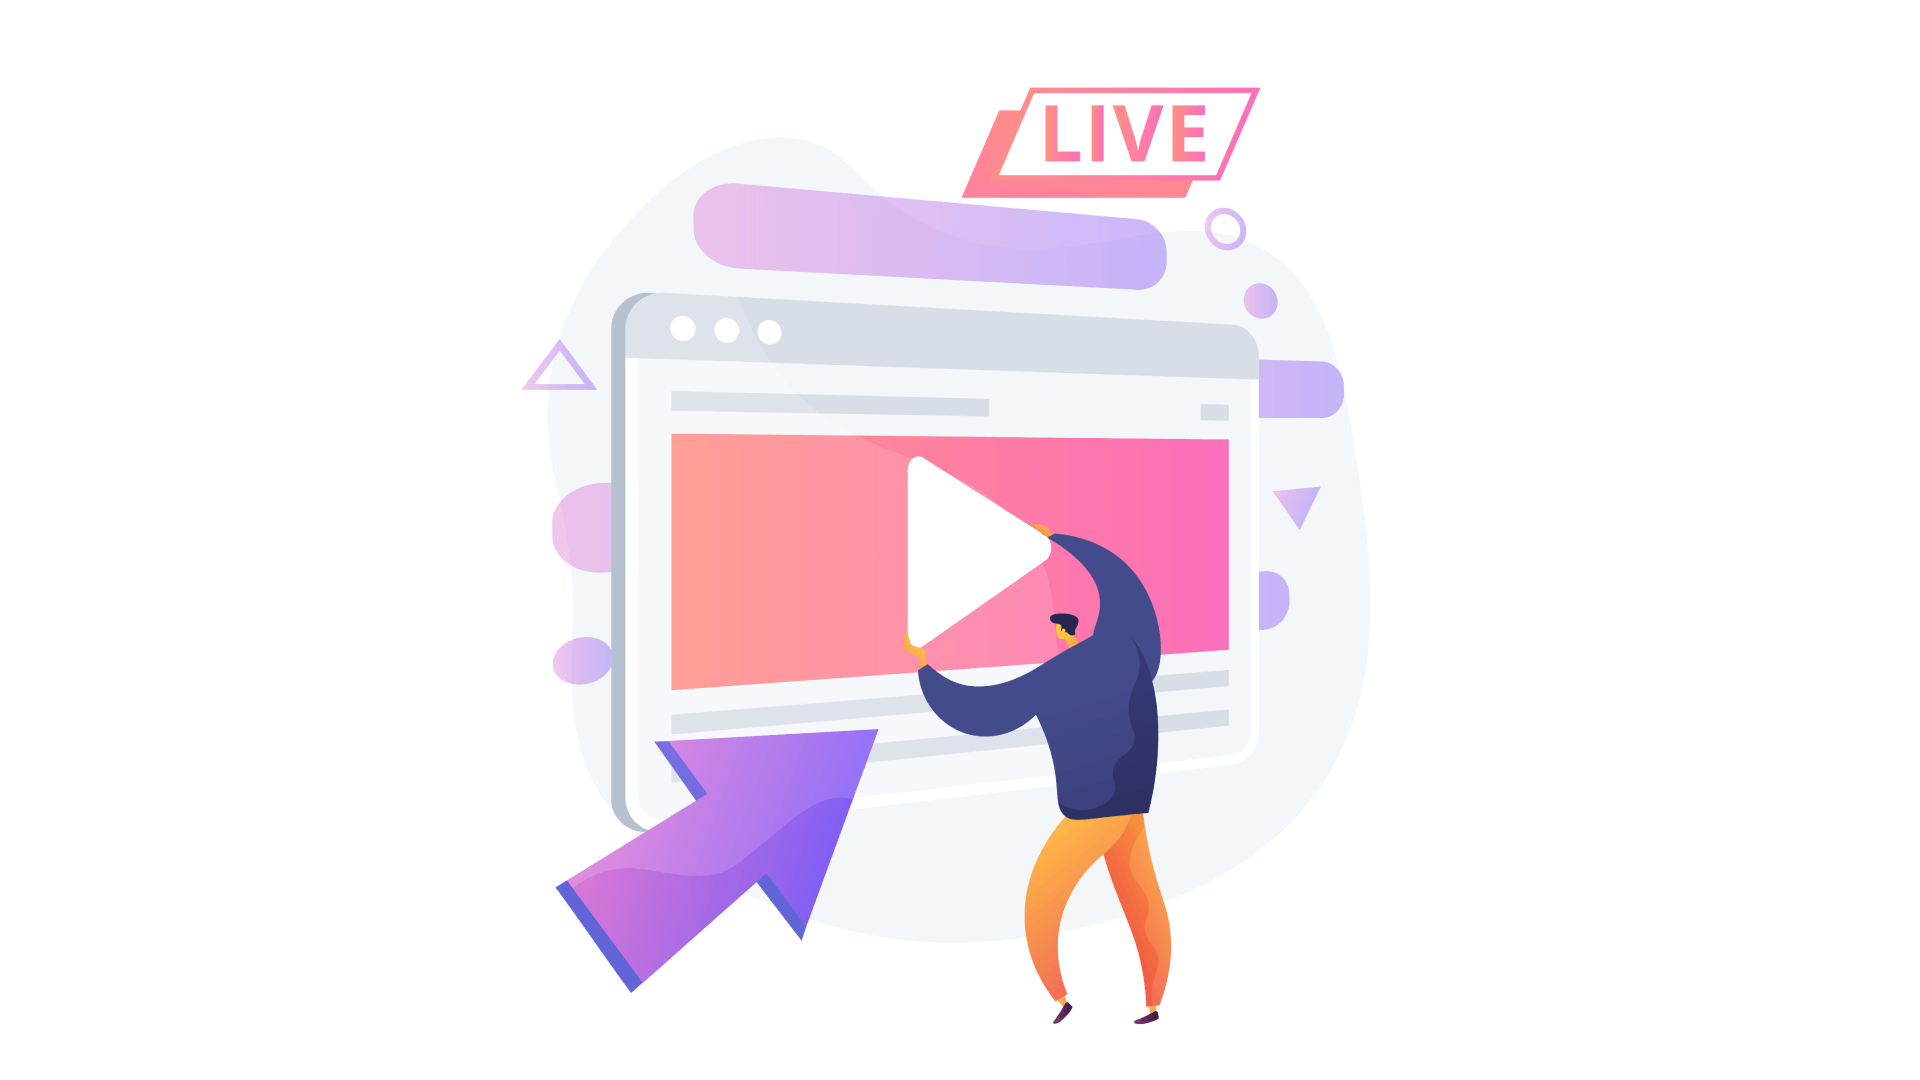 Live streaming apps allow users to broadcast video content to a wide audience.